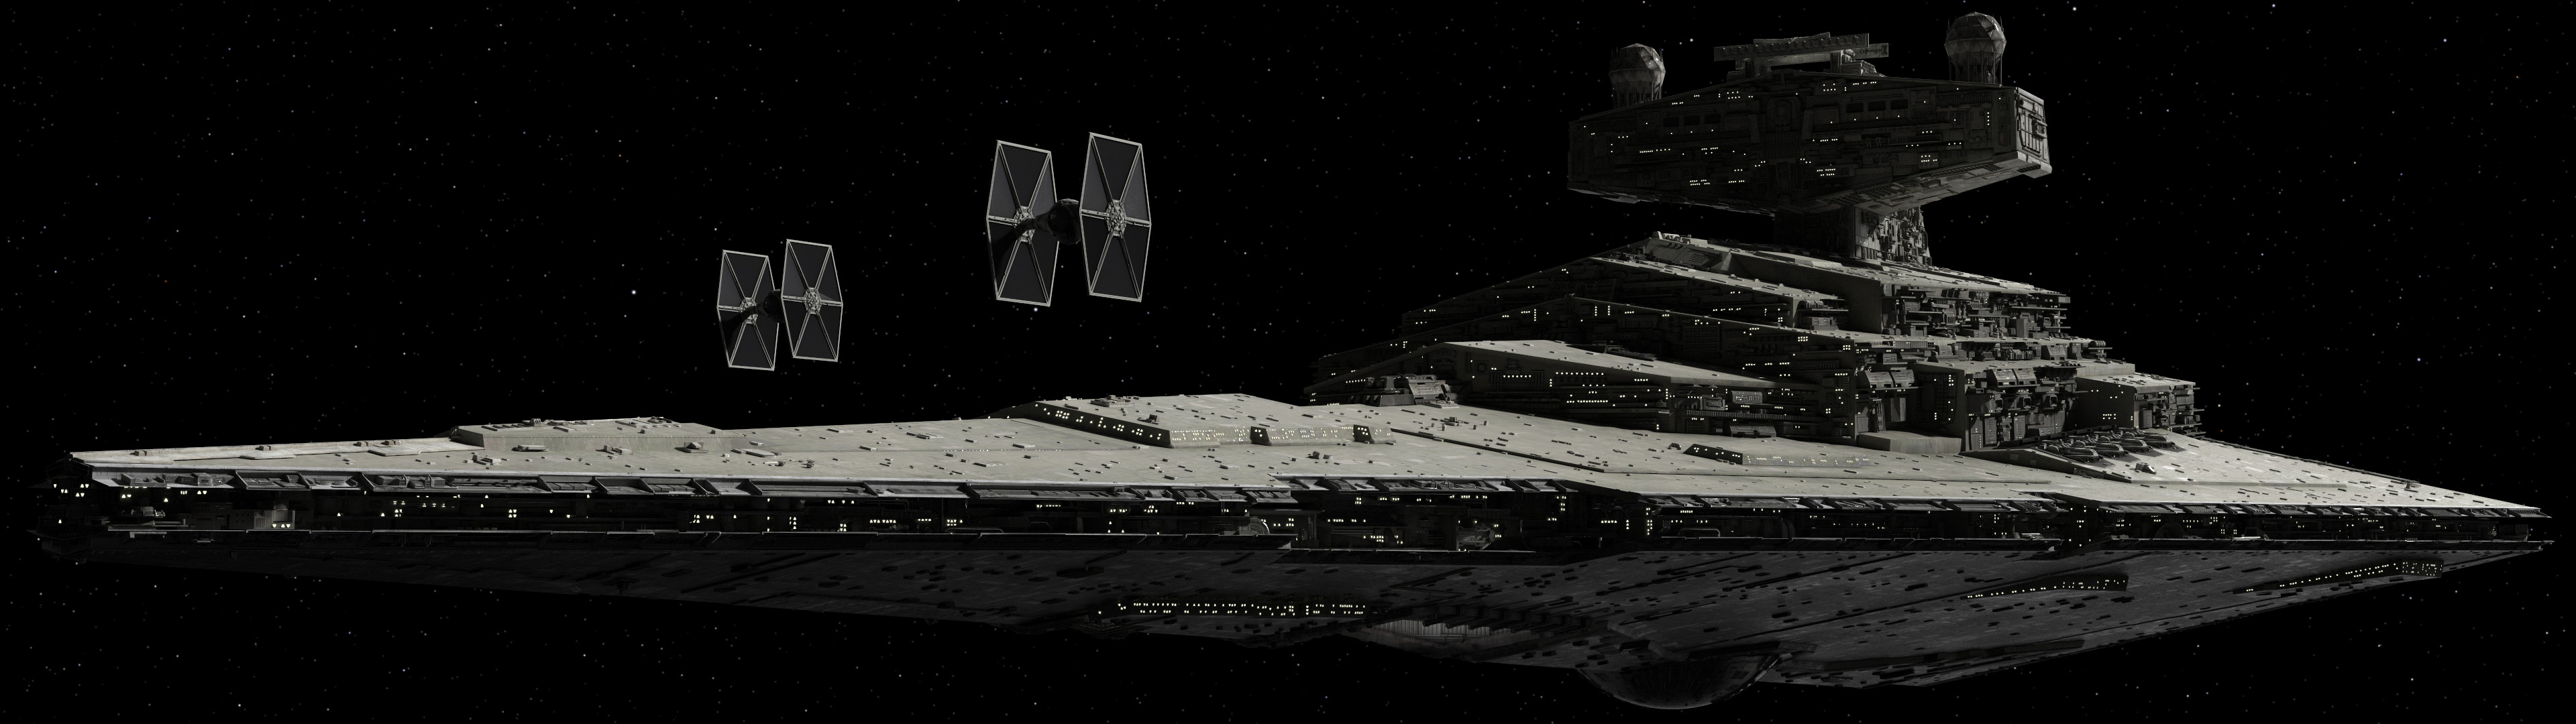 A few dual-monitor Star Wars wallpapers I made